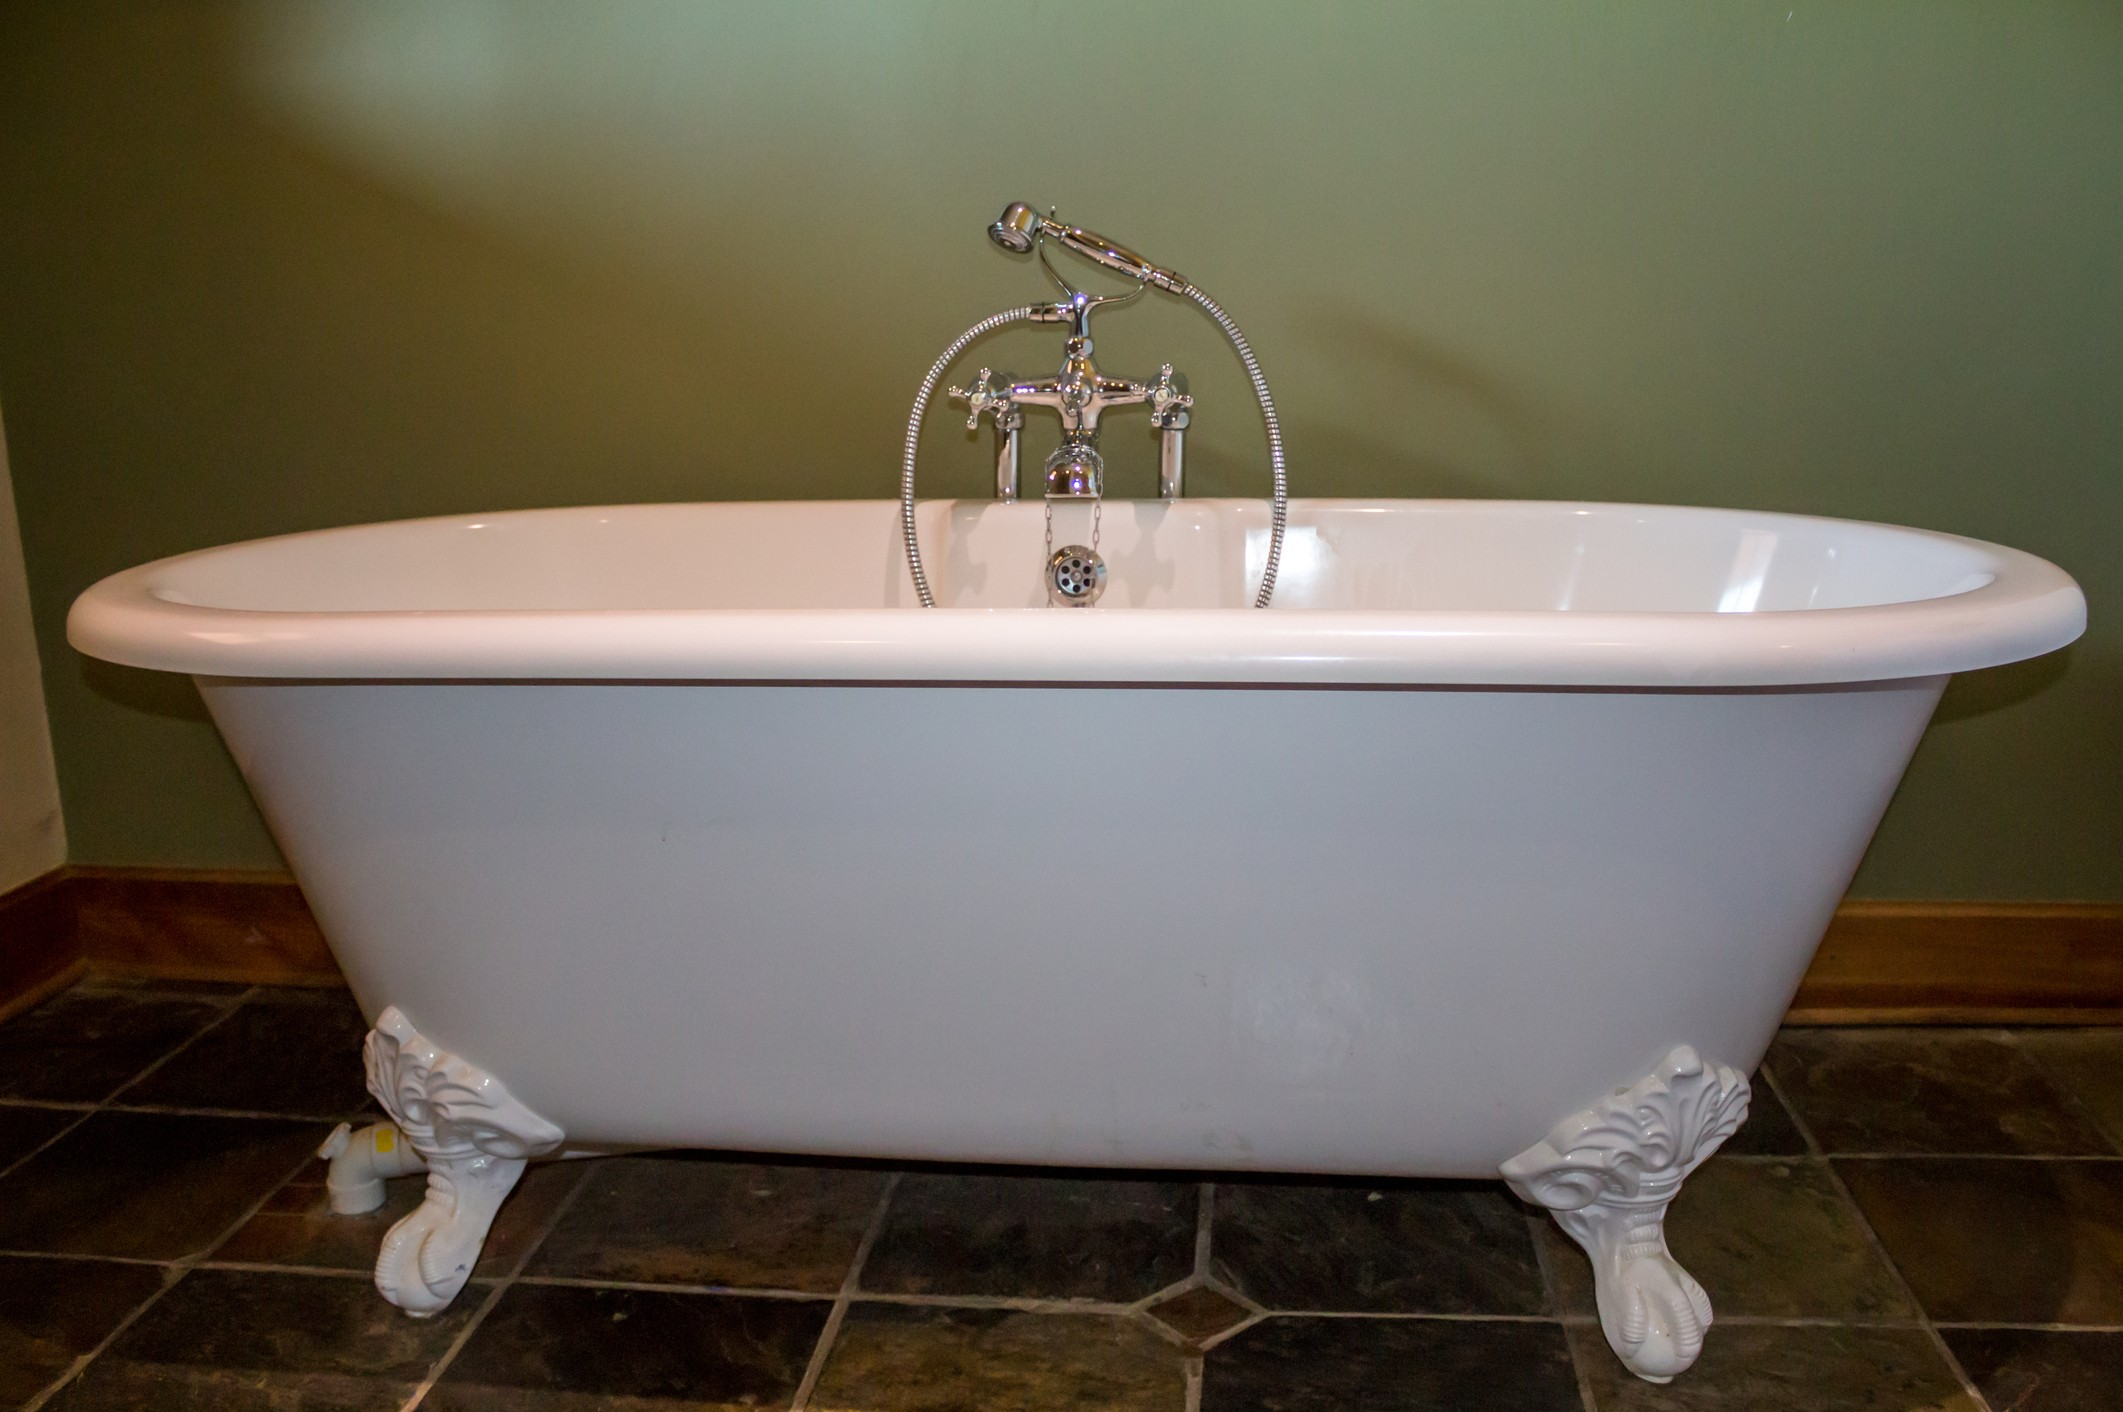 Claw foot bath tub in olive green bathroom